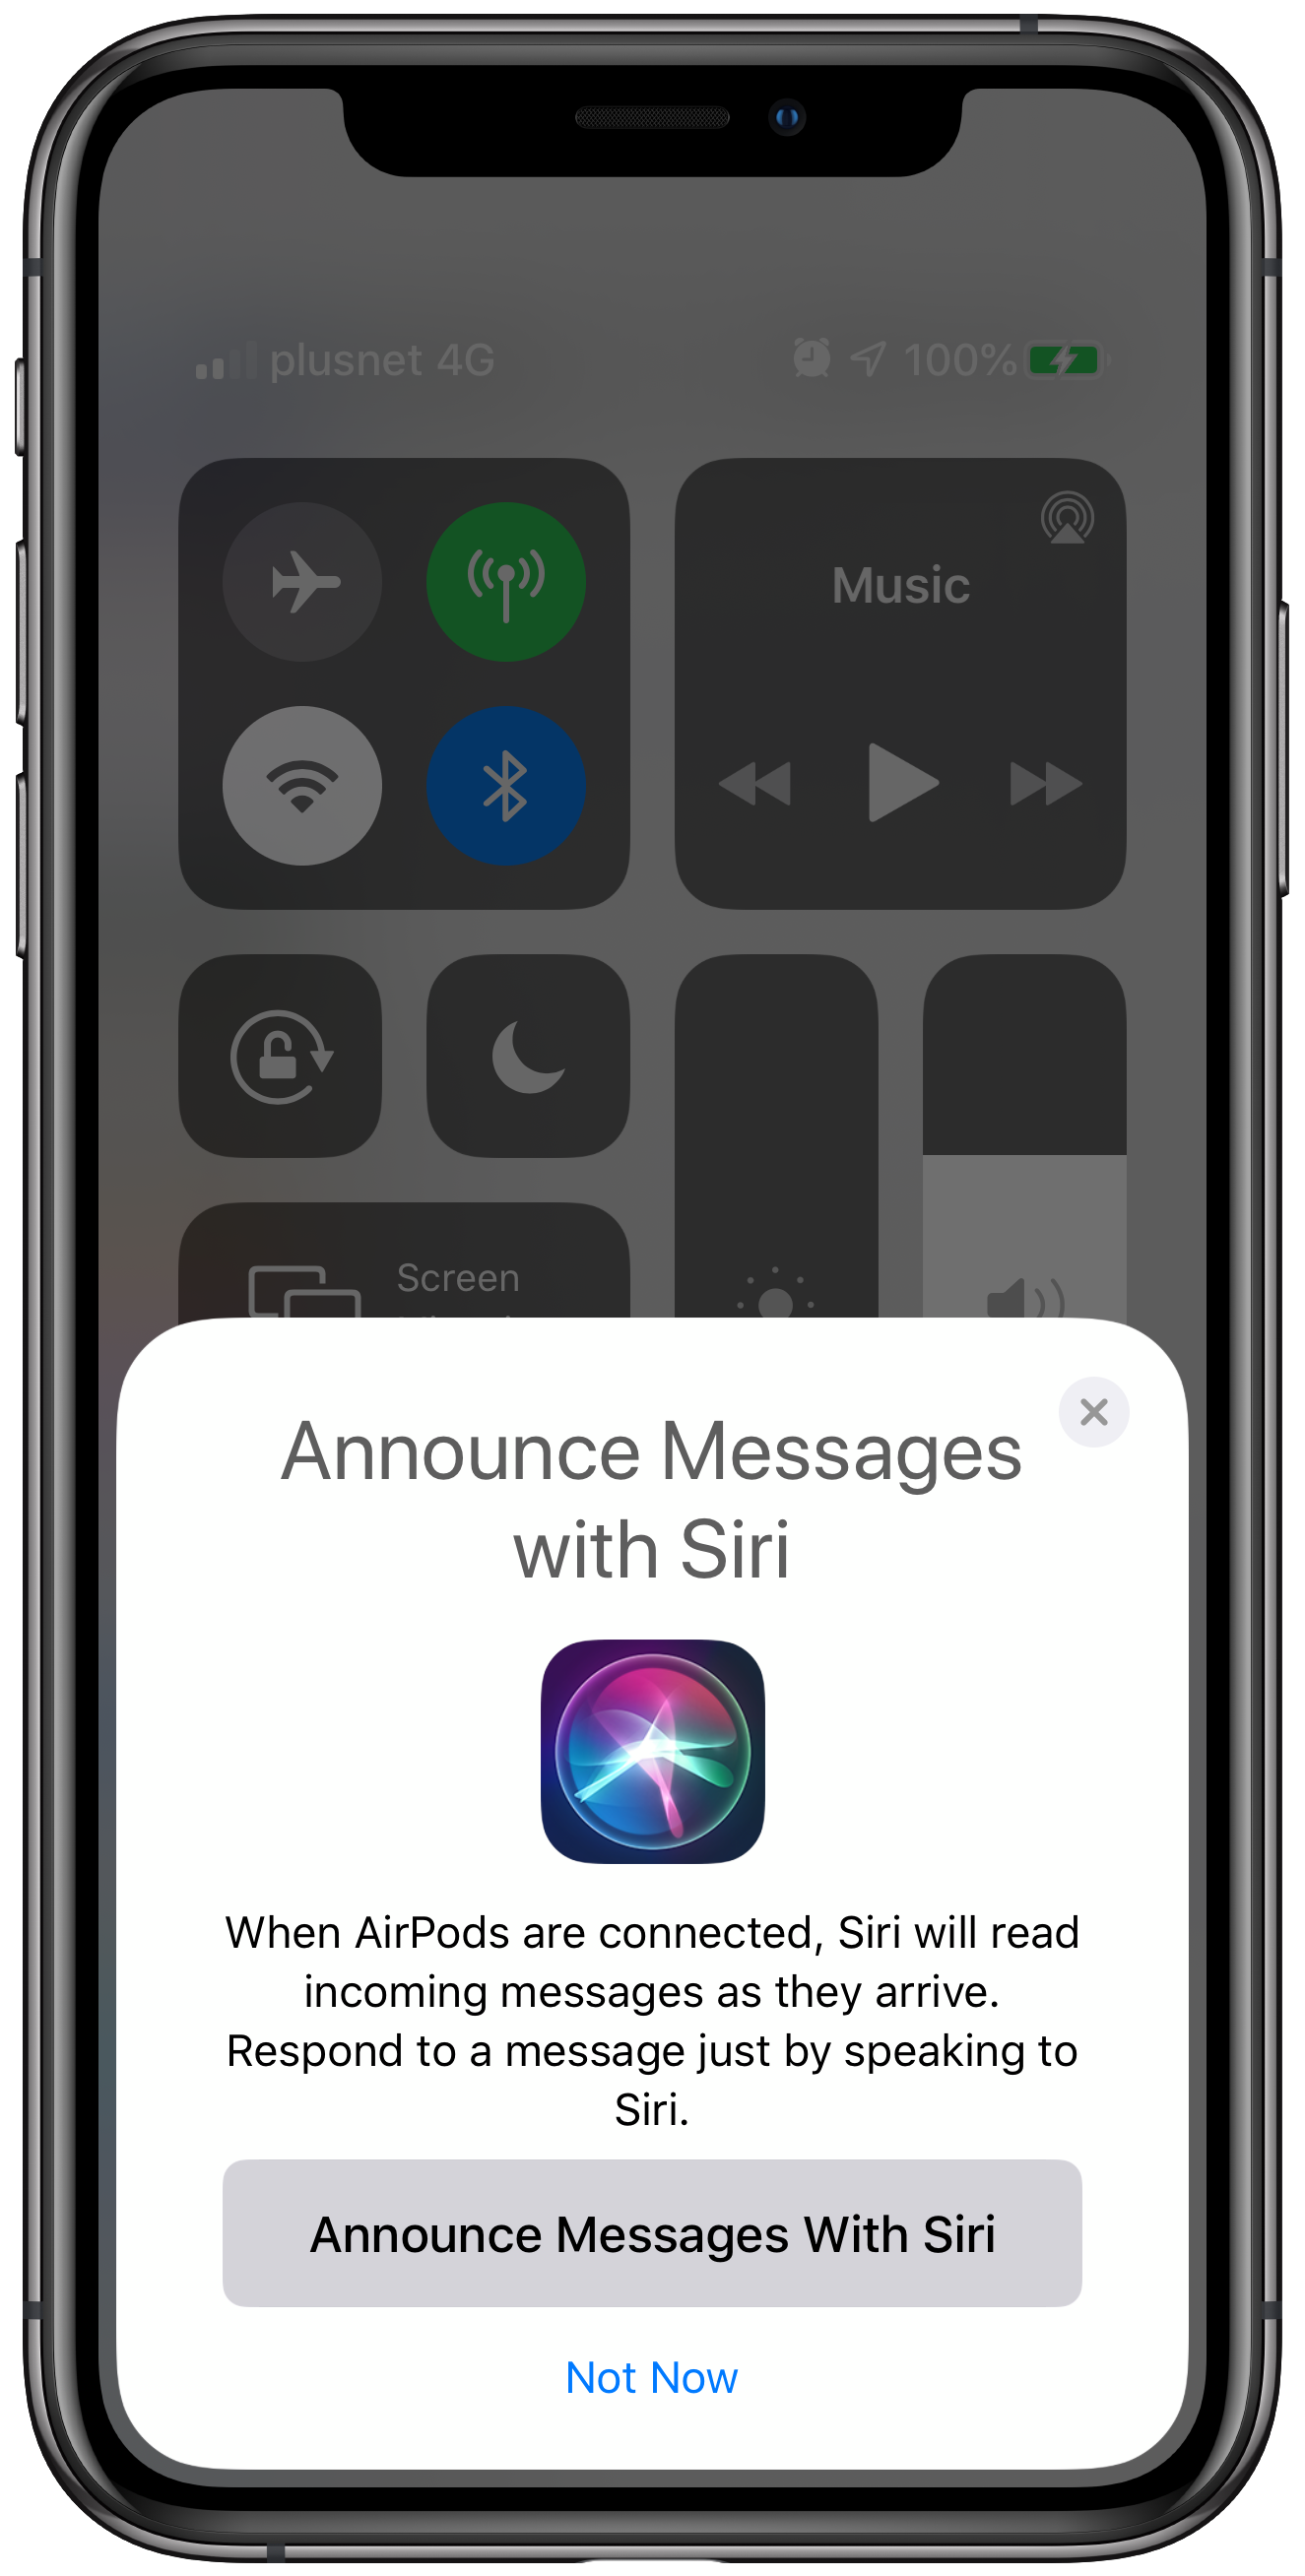 What is Announce Messages with Siri? How to customize the